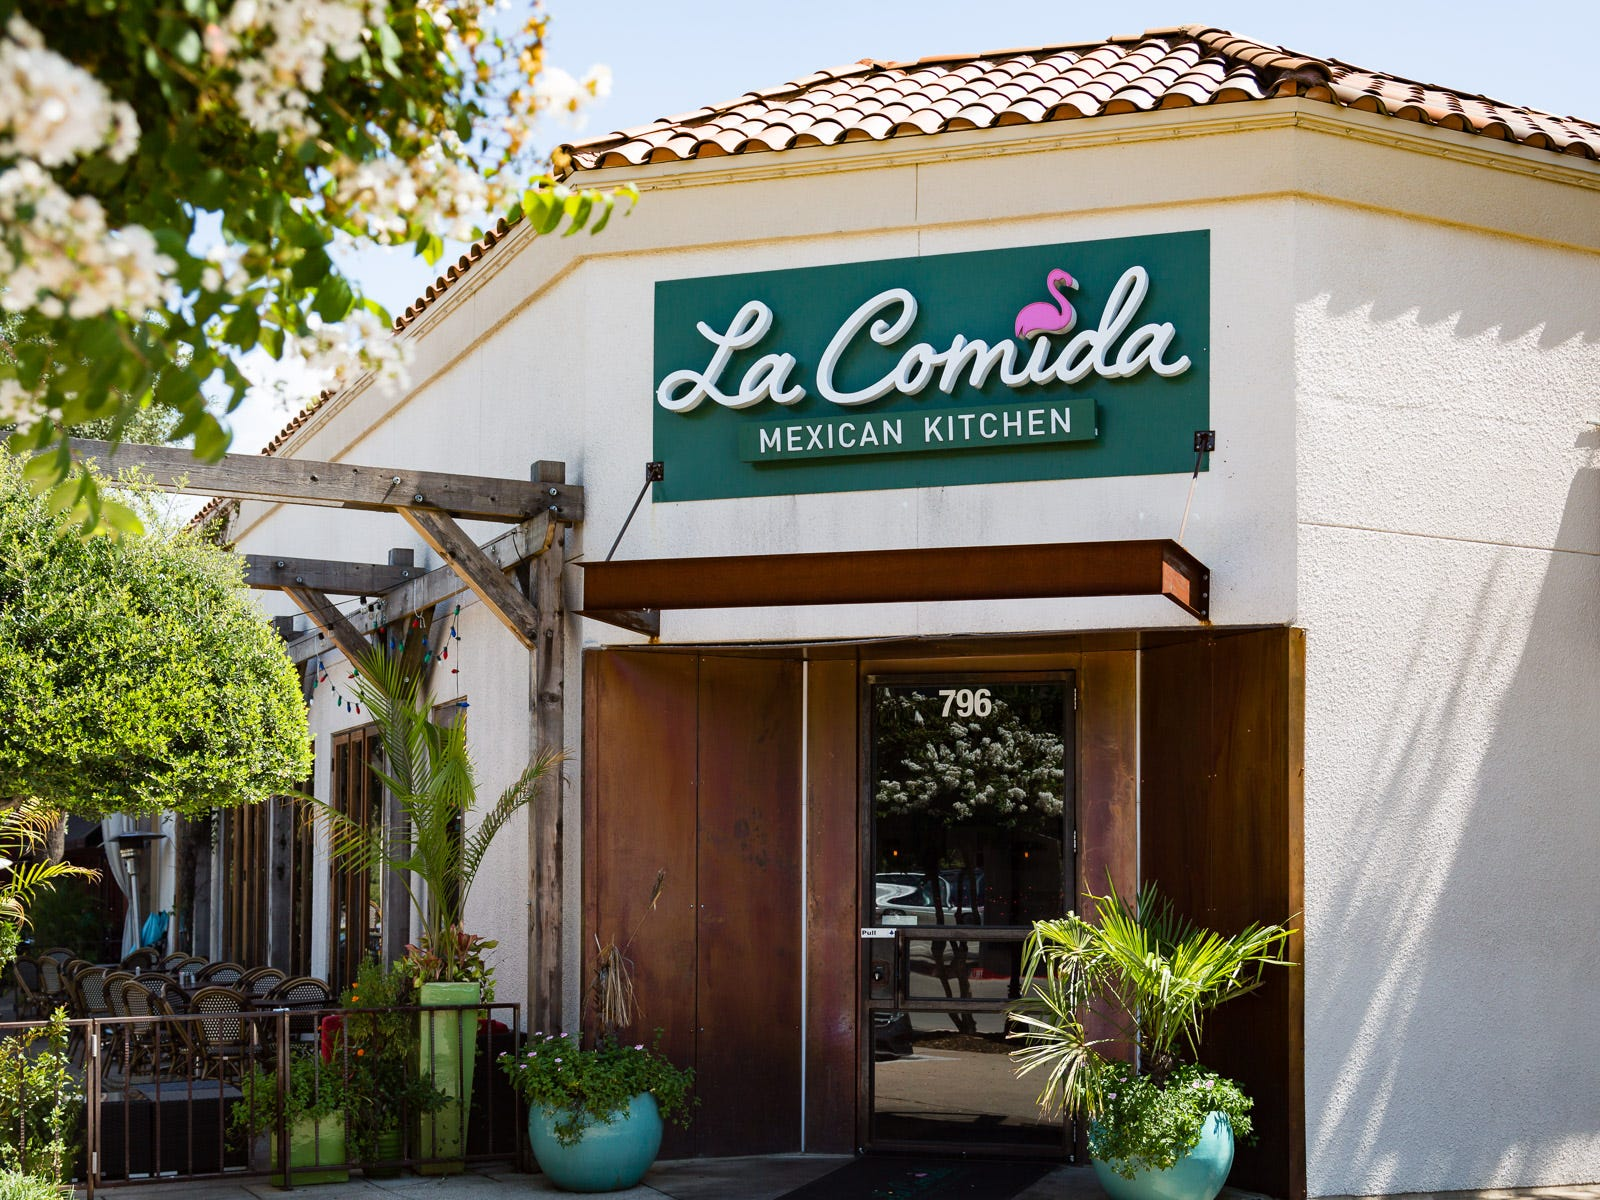 La Comida specializes in equal parts Tex-Mex and Yucatan cuisine, and the menu hasn't veered off-course since brothers Mario and Ivan Urtecho opened the restaurant in the North Dallas suburb of Addison four years ago.